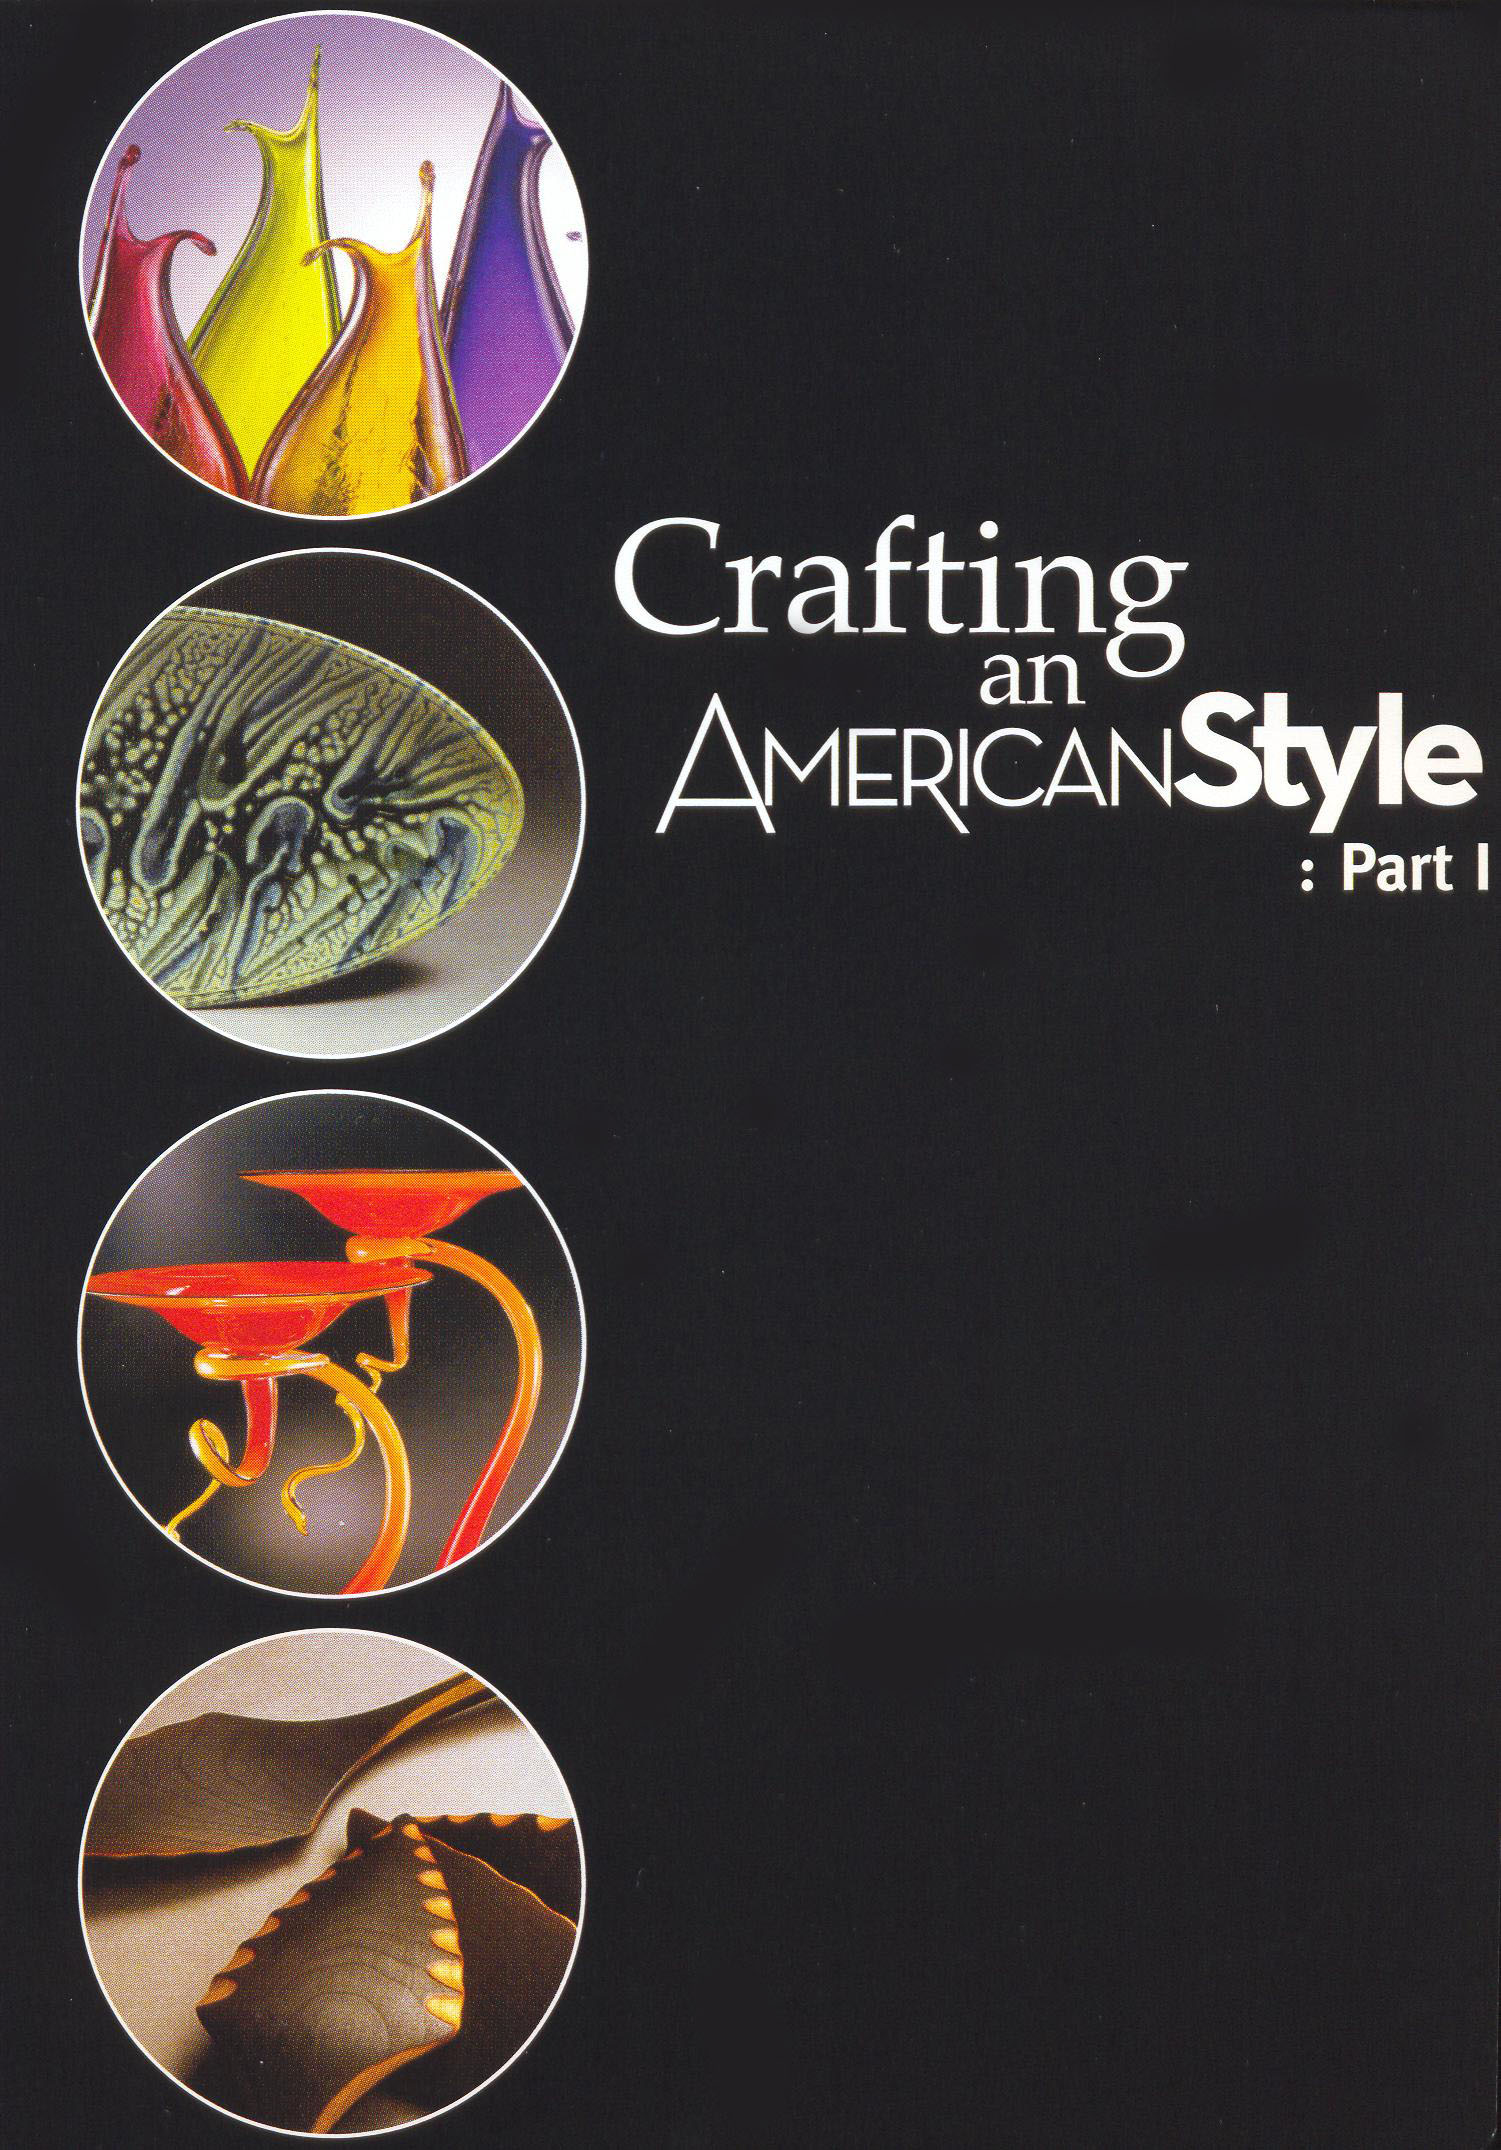 Crafting an American Style, Part 1